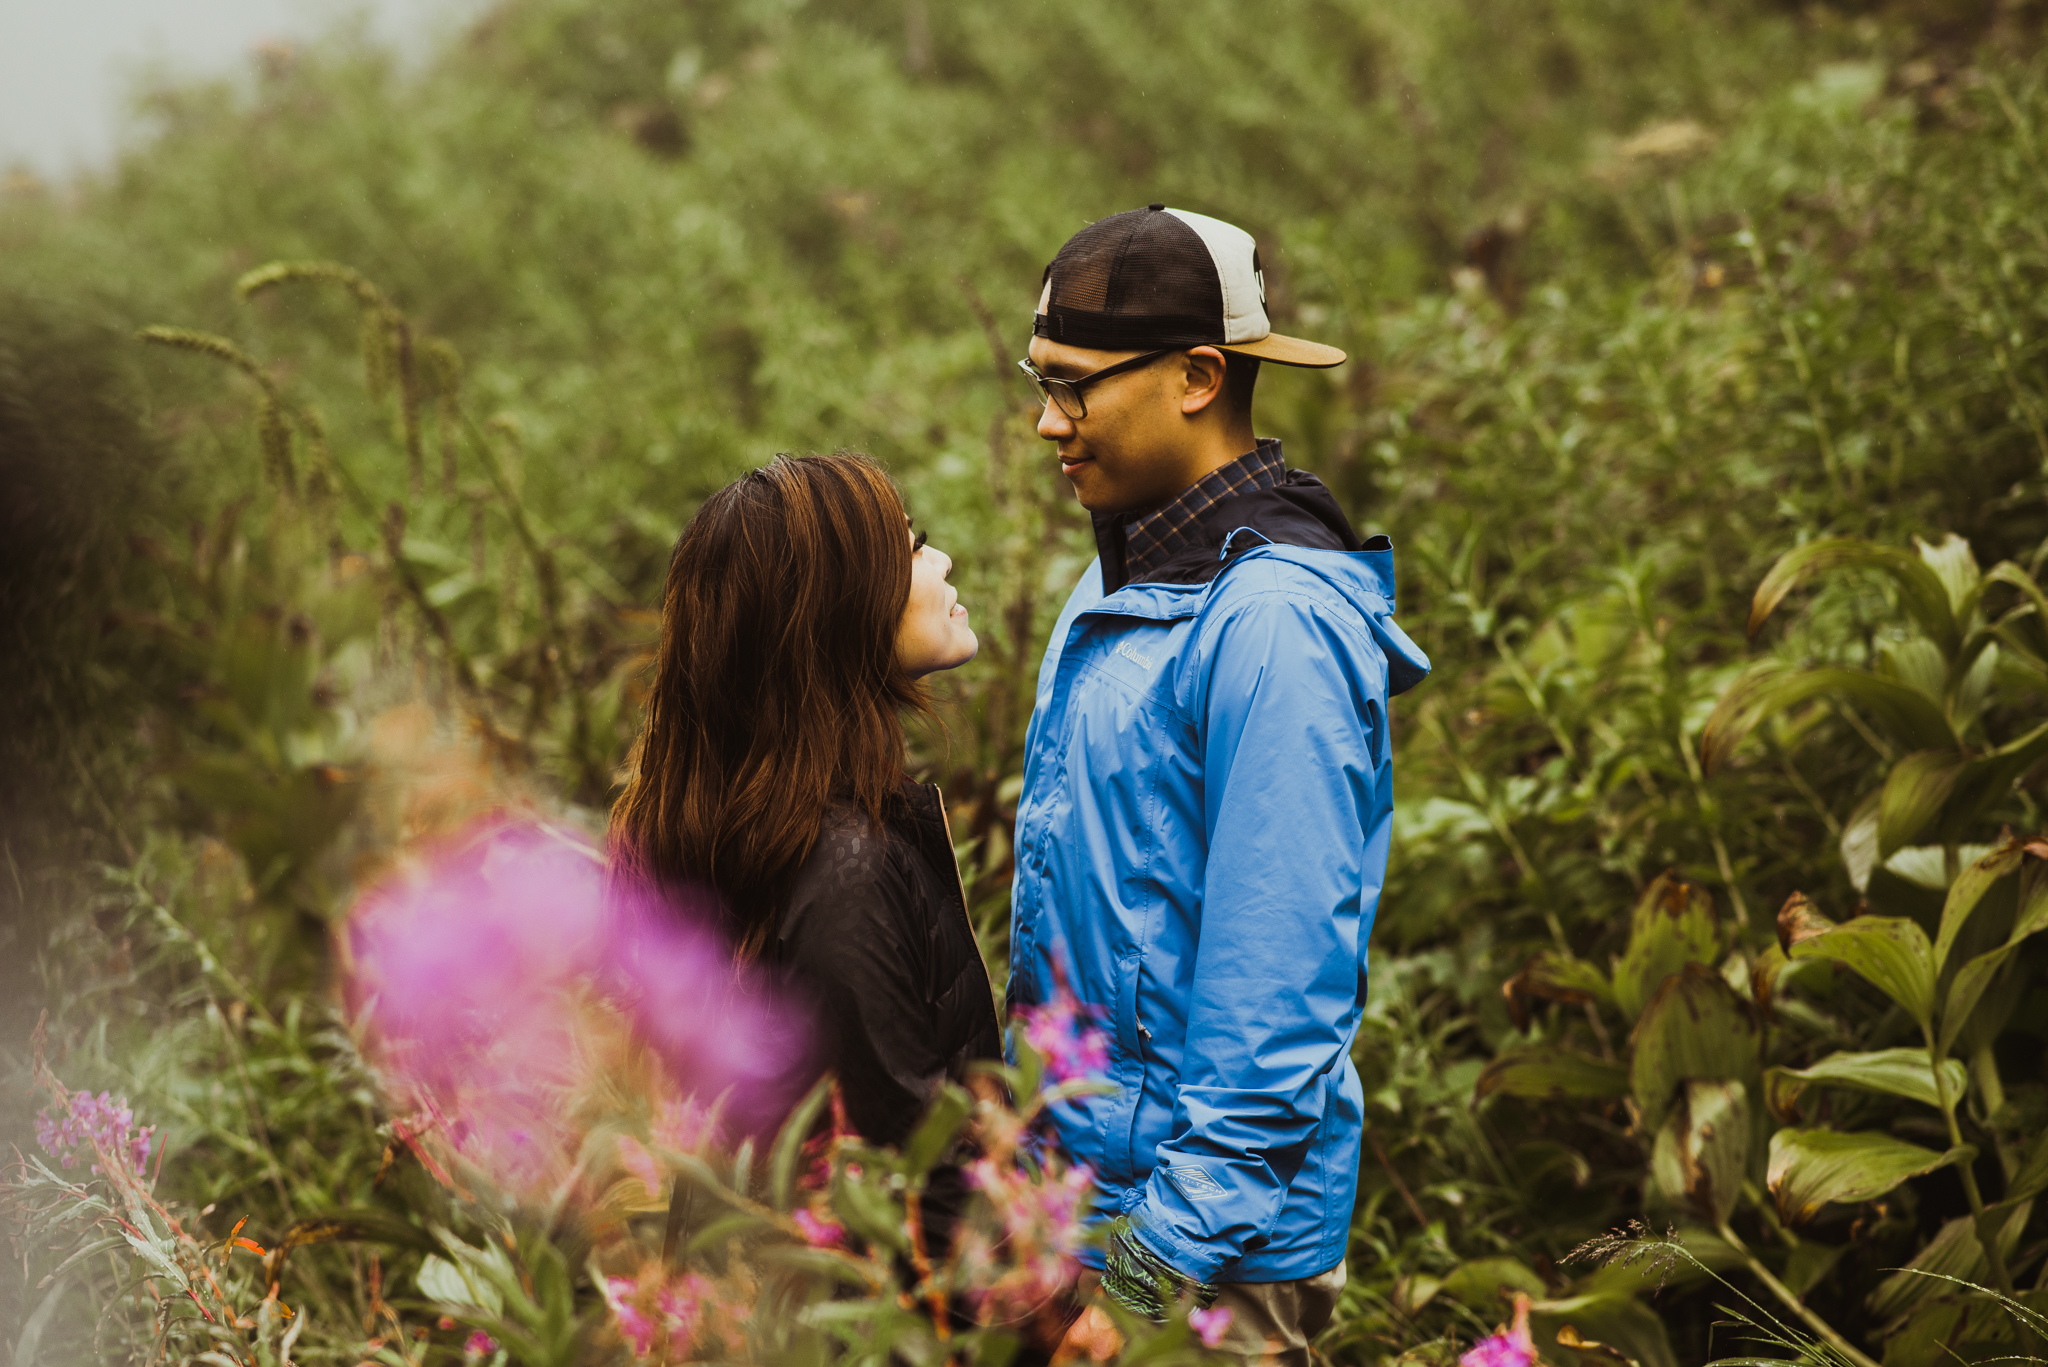 ©Isaiah-&-Taylor-Photography---Hidden-Lake-Cascade-Mountains-Engagement,-Washington-033.jpg